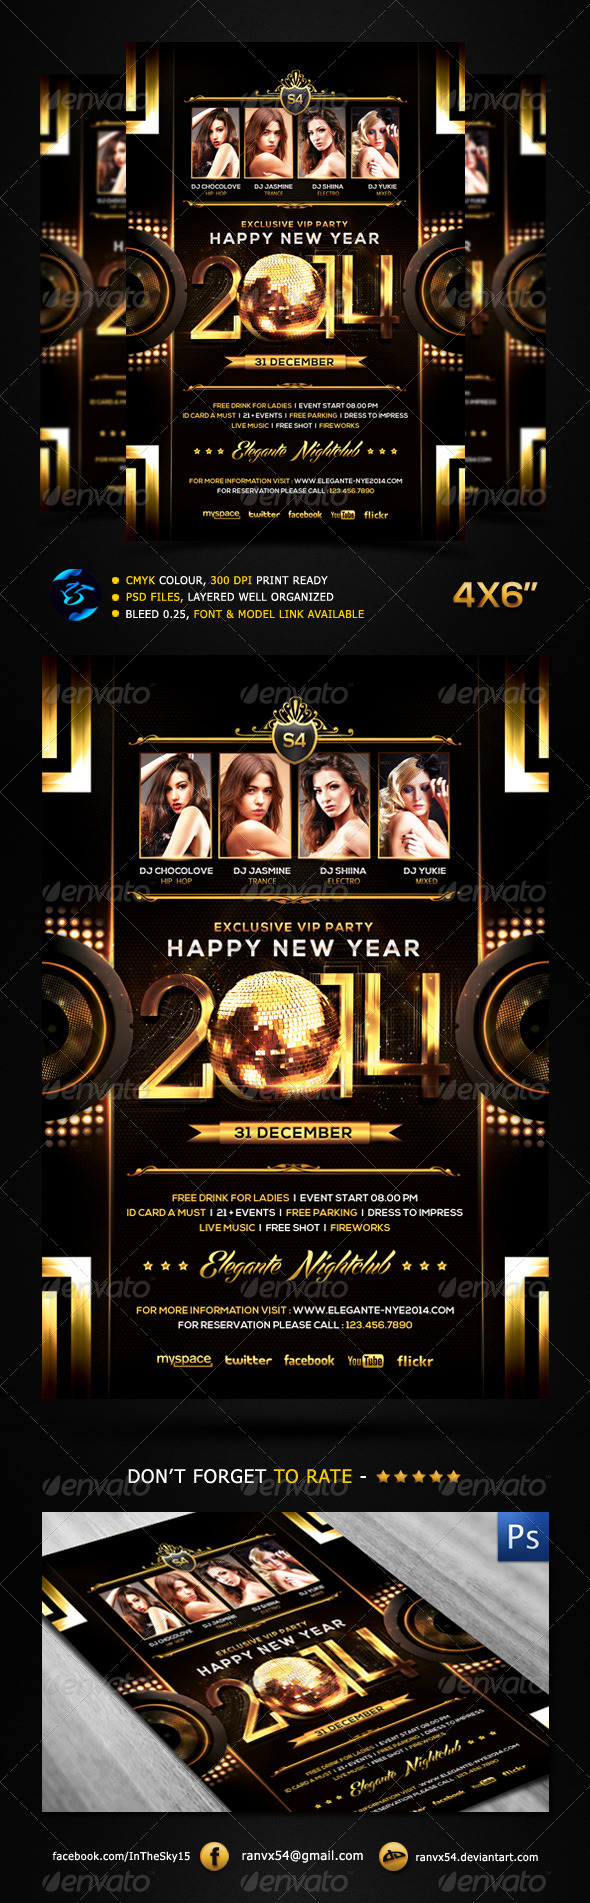 GraphicRiver New Year 2014 Flyer Template 6183379